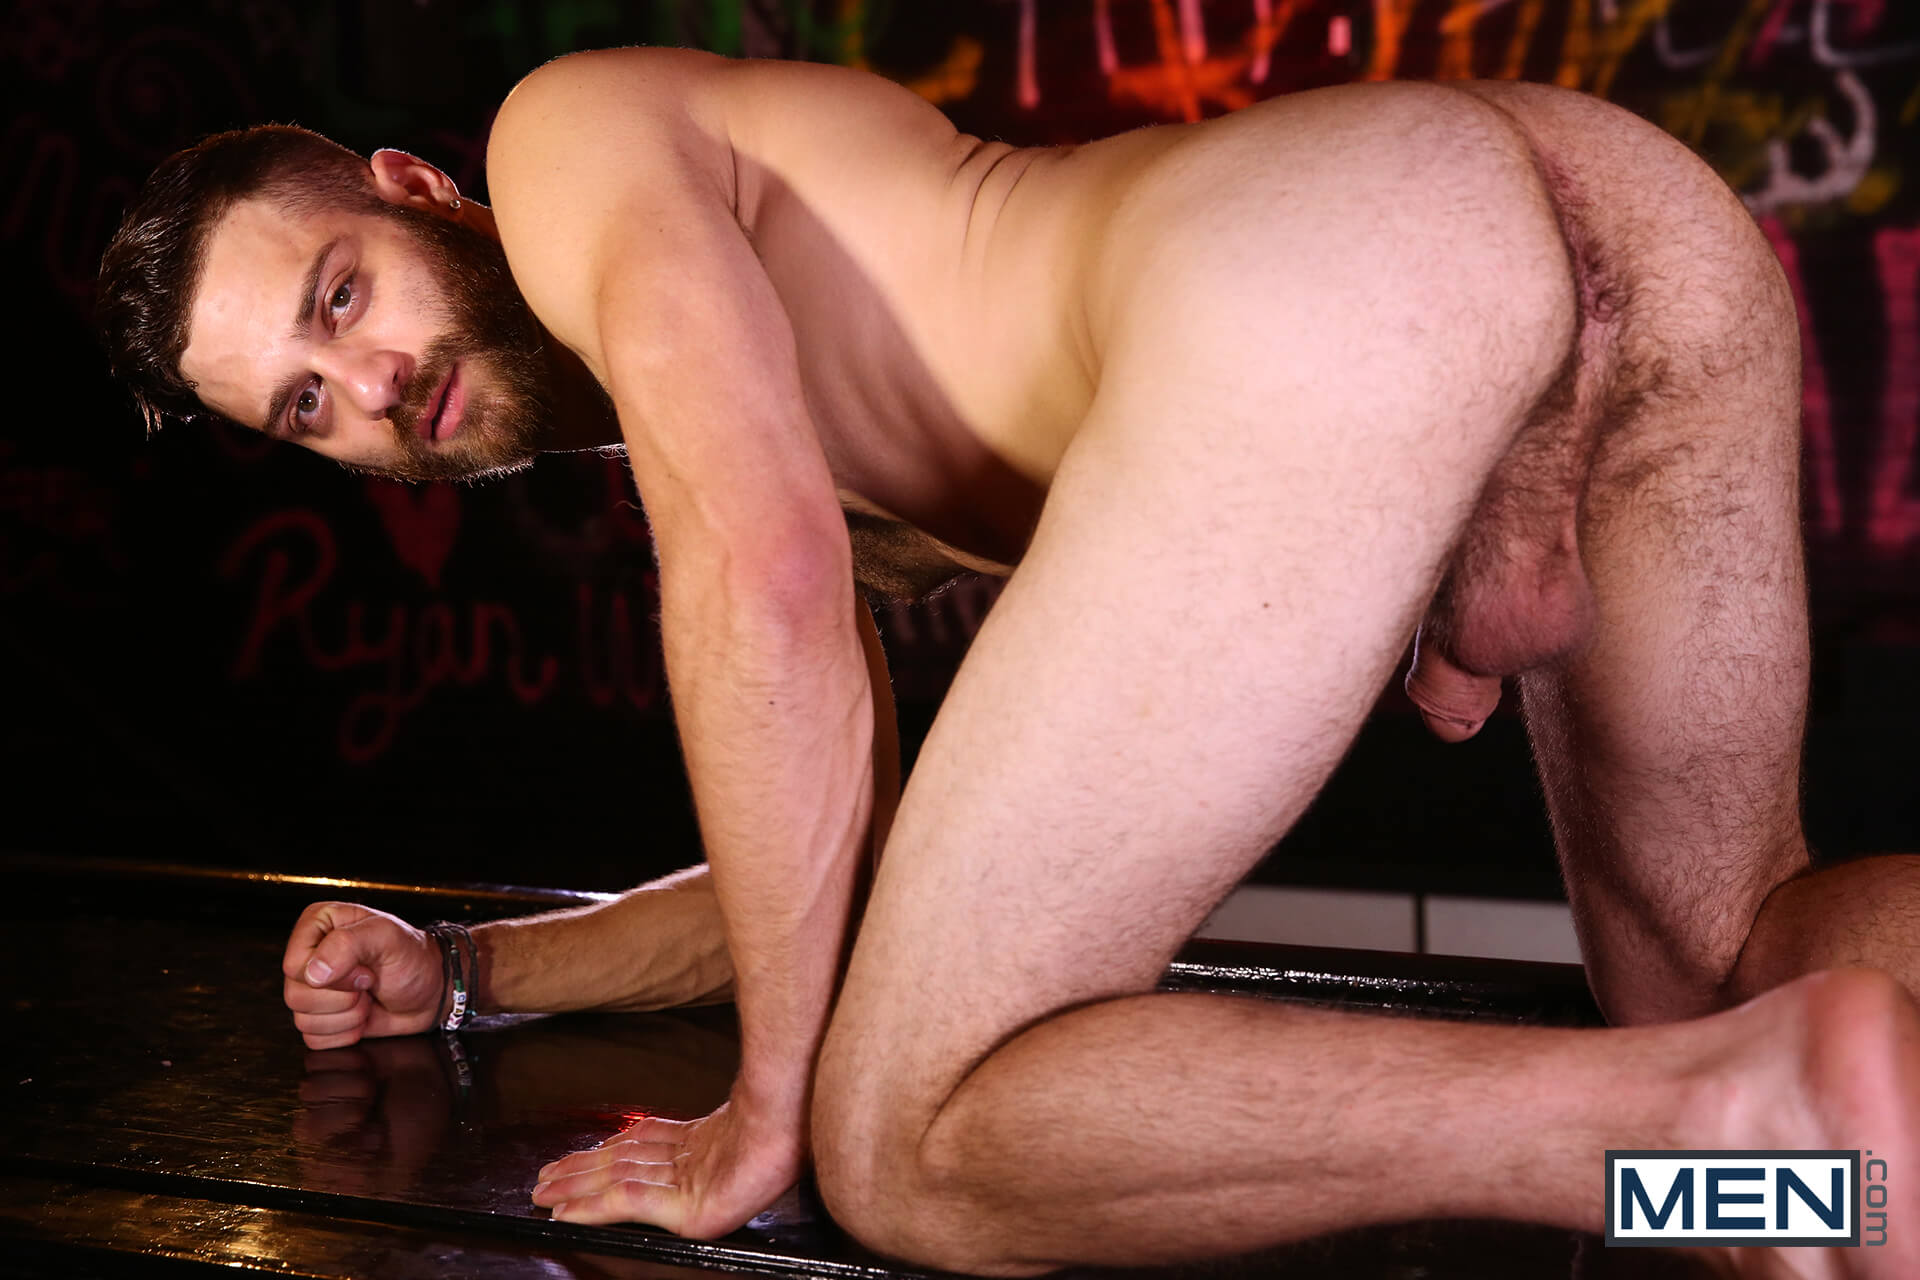 men drill my hole love gun part 3 adam herst tommy defendi gay porn blog image 6